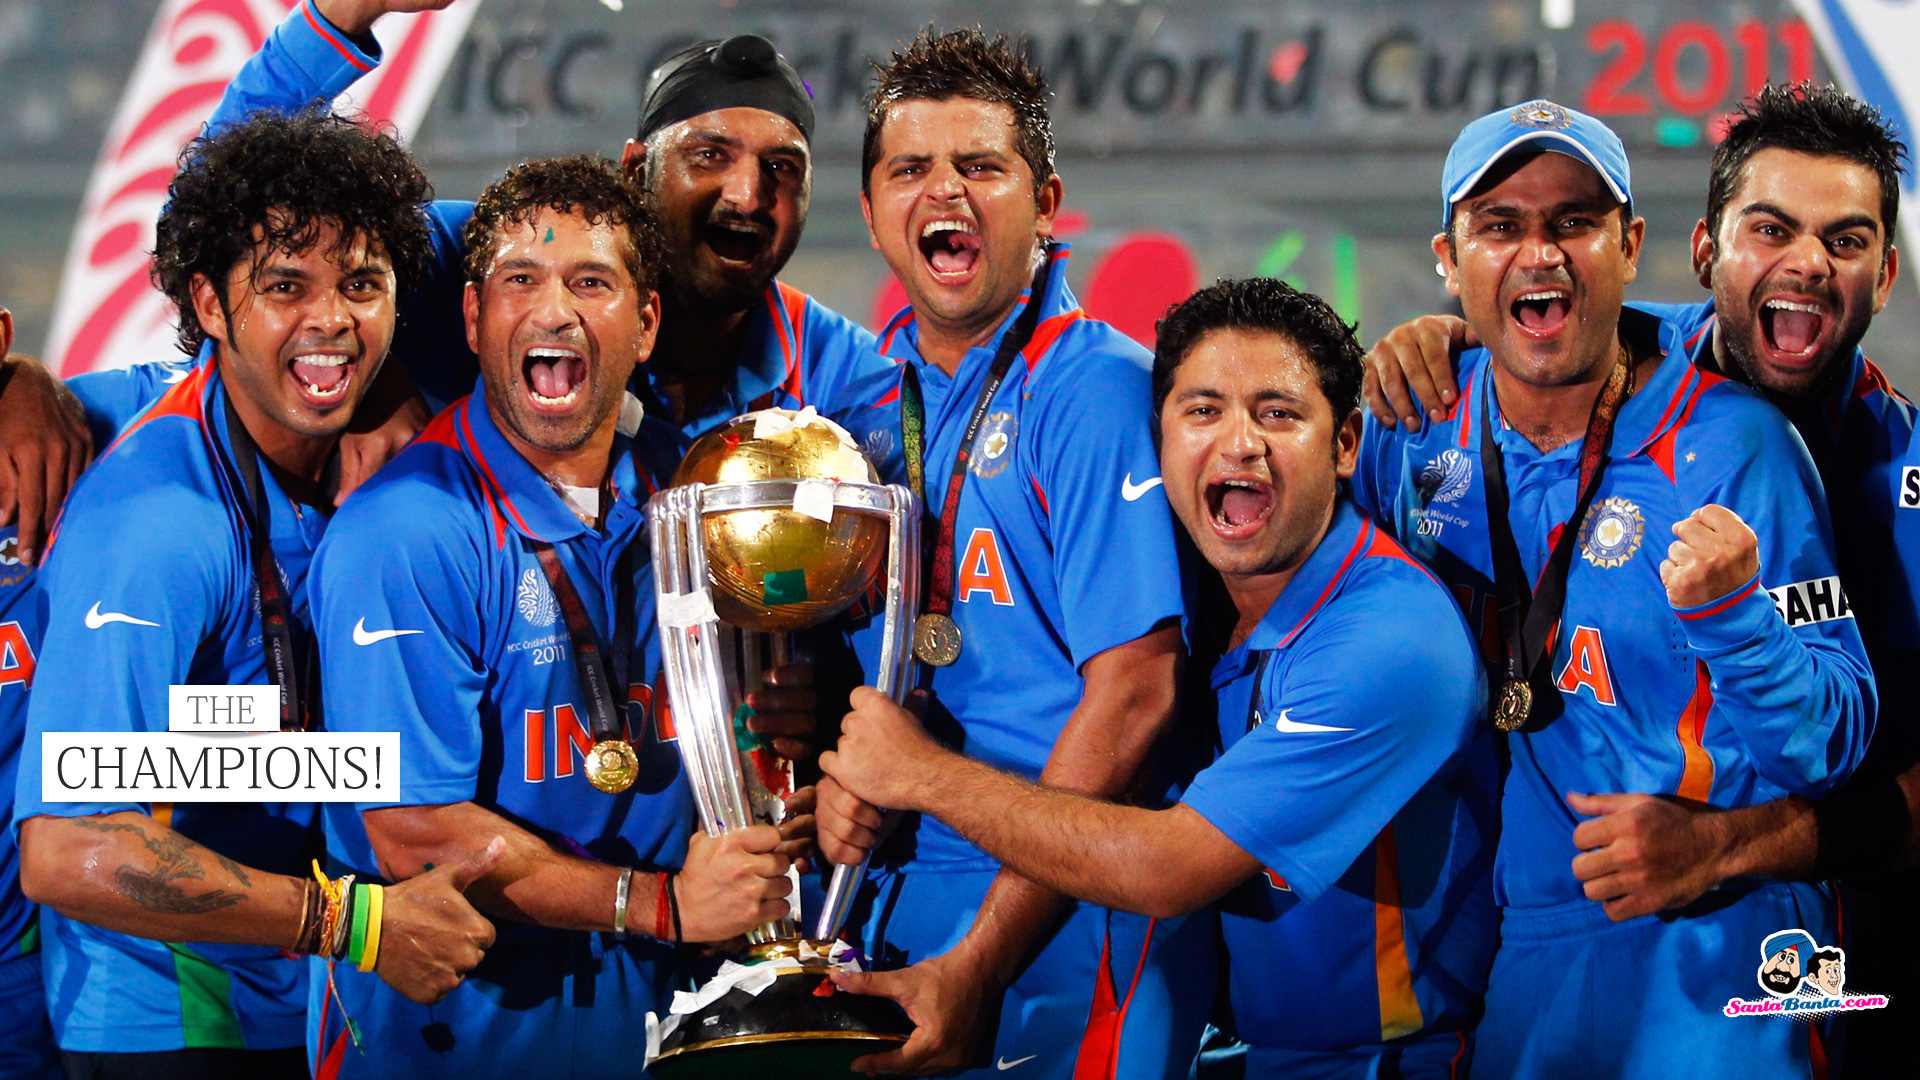 Download Indian Cricket Team HD Wallpapers Gallery | 1920 x 1080 jpeg 836kB